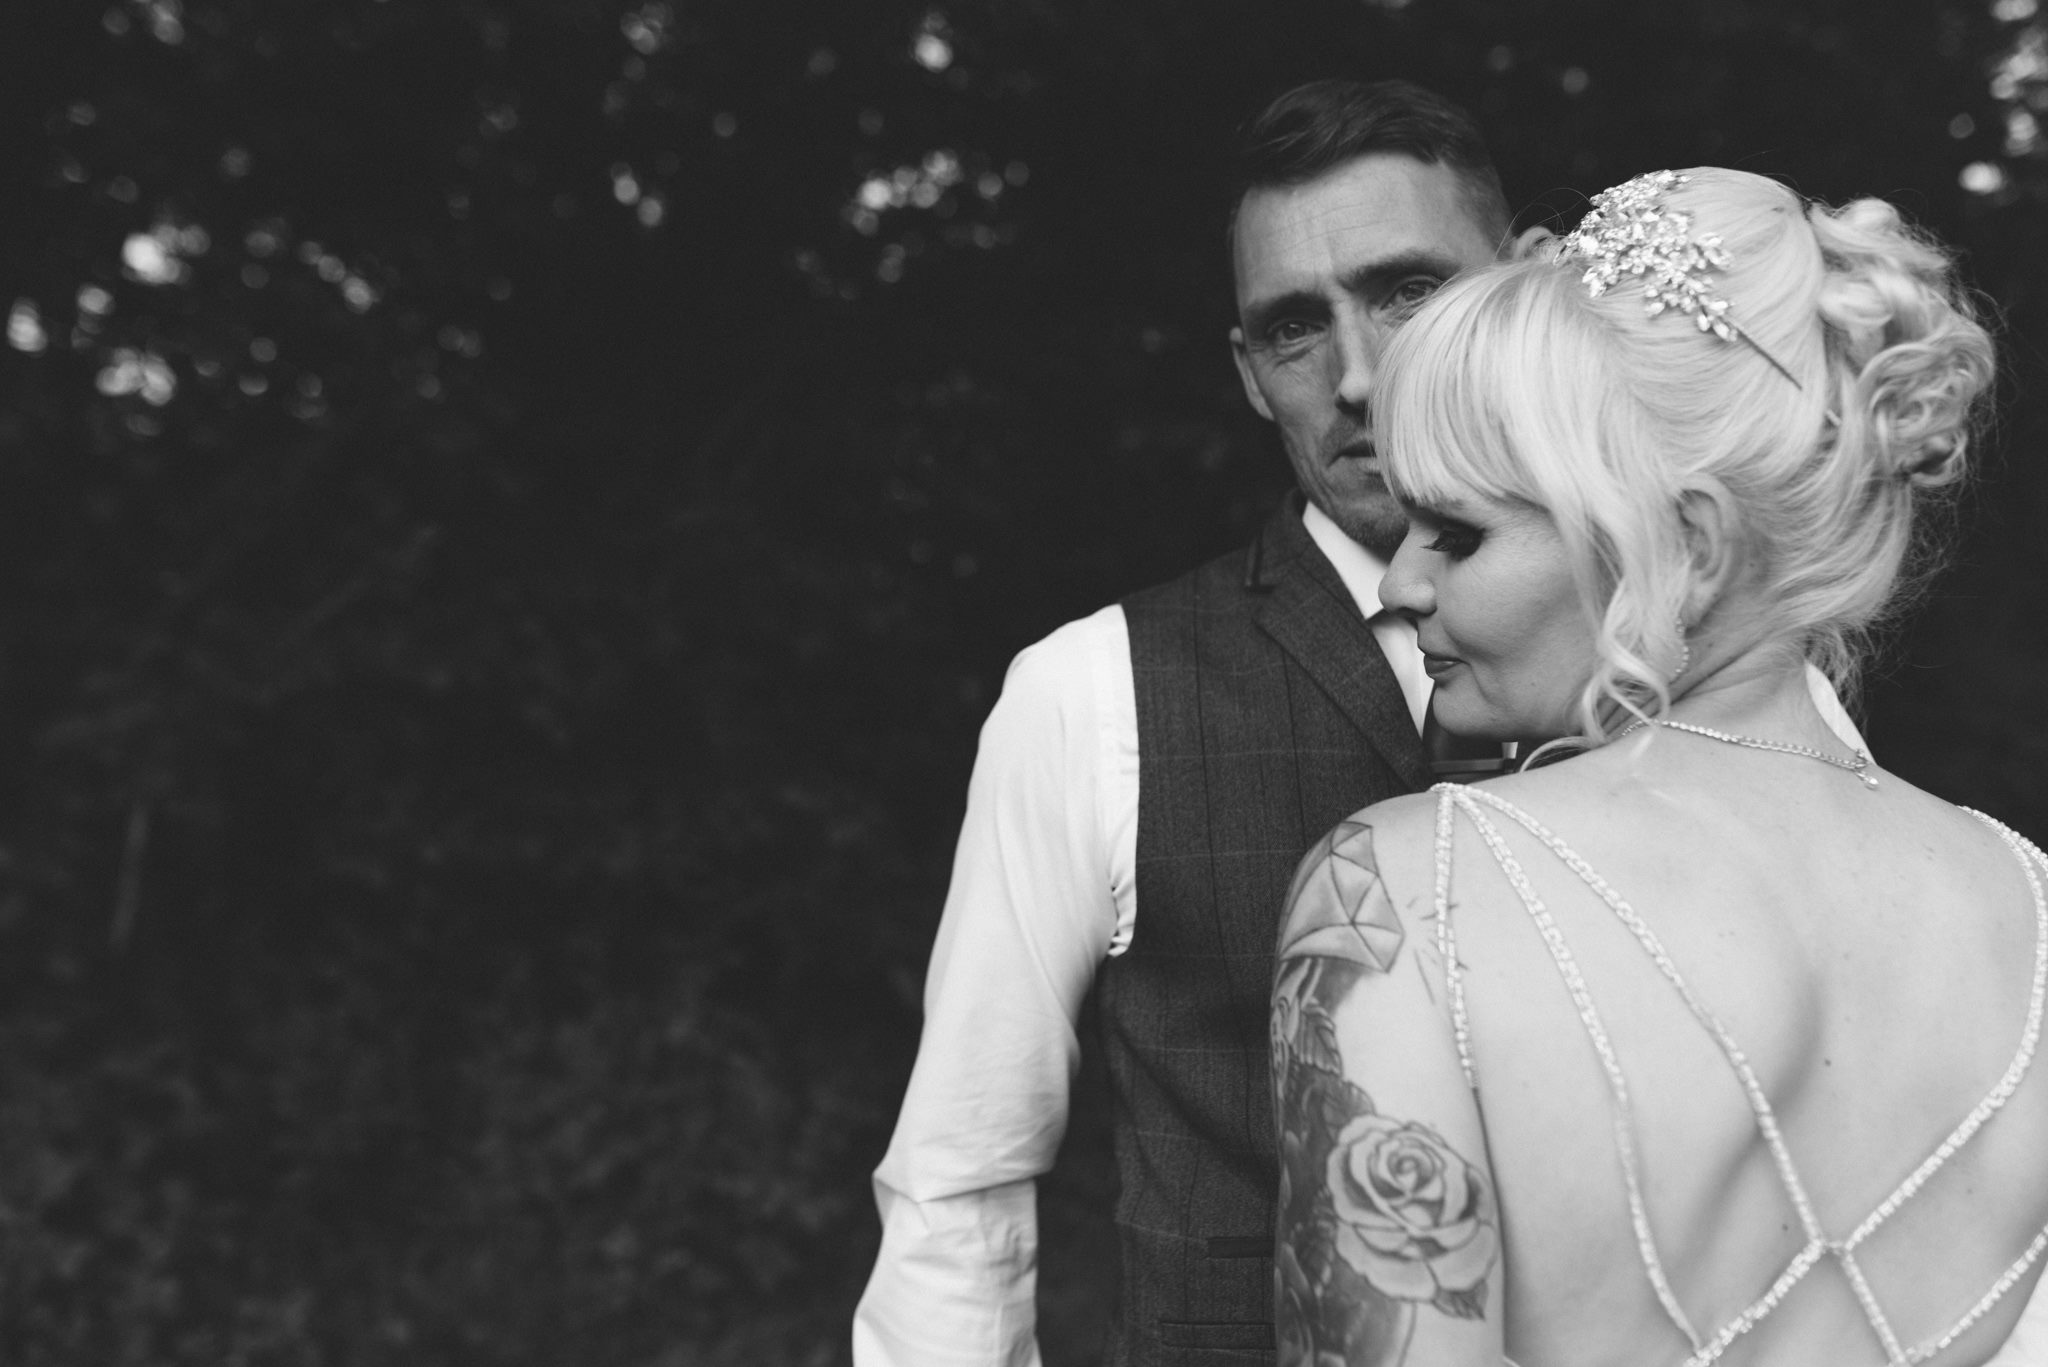 alternative wedding photographer shropshire Tattoo bride Craven Arms wedding shropshire gabrielle bower photography